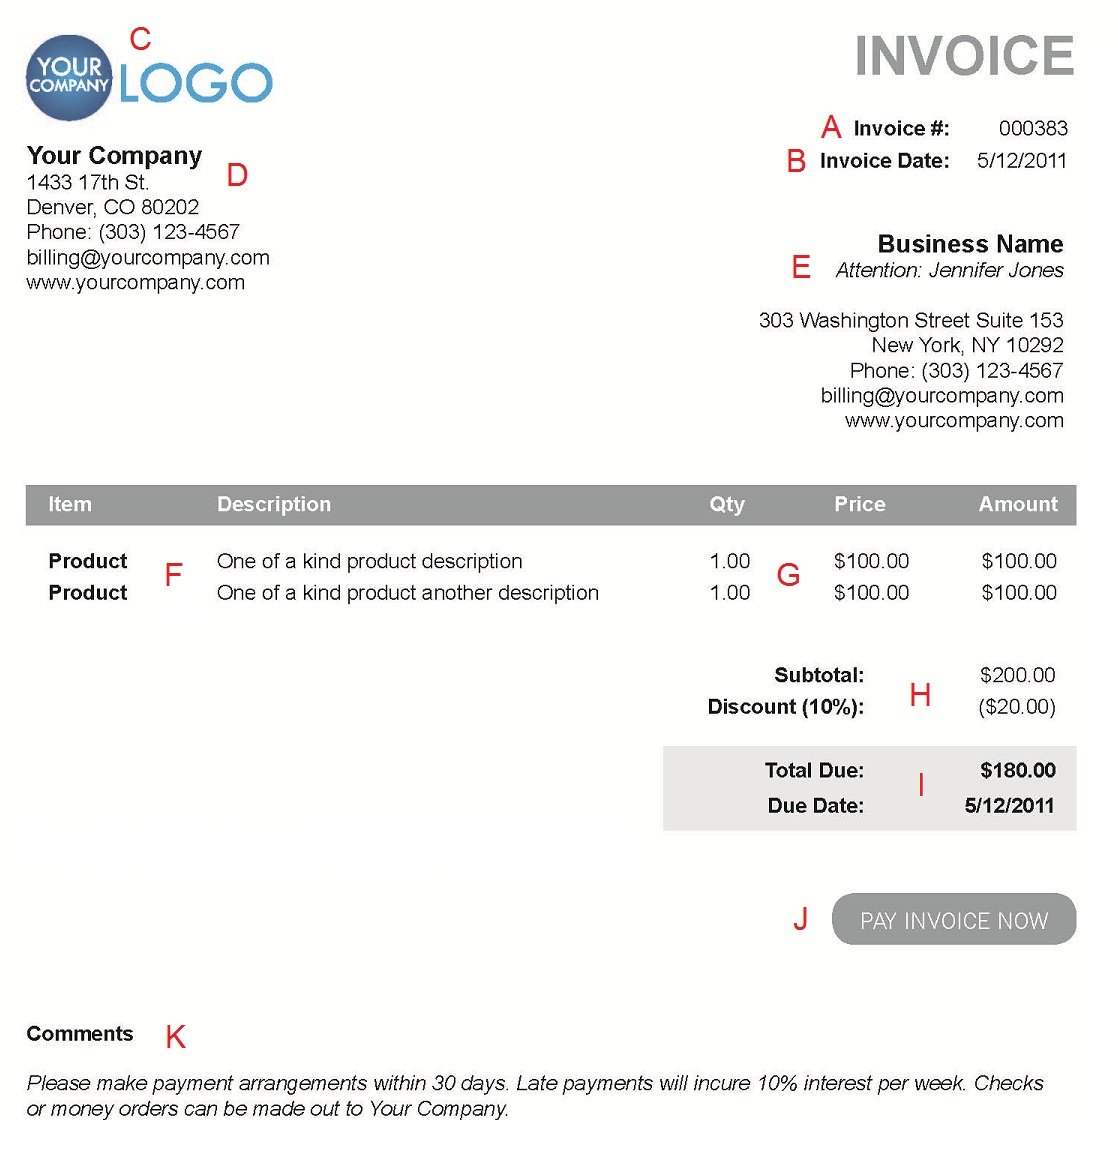 Aaaaeroincus  Splendid The  Different Sections Of An Electronic Payment Invoice With Inspiring A  With Astounding Free Word Invoice Template Also Cleaning Invoice In Addition Invoice Stamp And How To Create A Paypal Invoice As Well As Business Invoice App Additionally Define Proforma Invoice From Paysimplecom With Aaaaeroincus  Inspiring The  Different Sections Of An Electronic Payment Invoice With Astounding A  And Splendid Free Word Invoice Template Also Cleaning Invoice In Addition Invoice Stamp From Paysimplecom